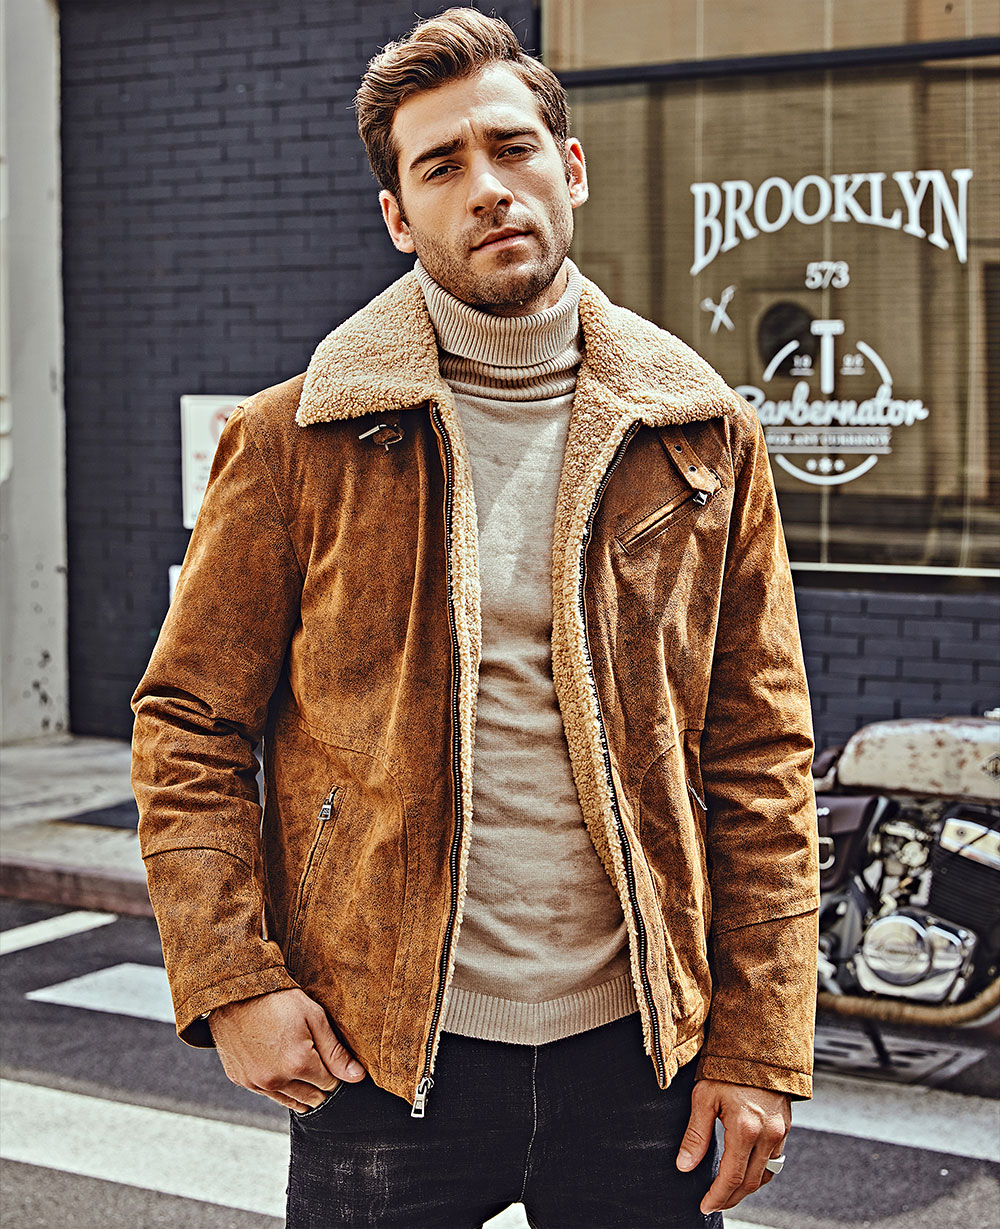 Hb0fda6d26ec340b1b20246982c077052J FLAVOR New Men's Genuine Leather Motorcycle Jacket Pigskin with Faux Shearling Real Leather Jacket Bomber Coat Men